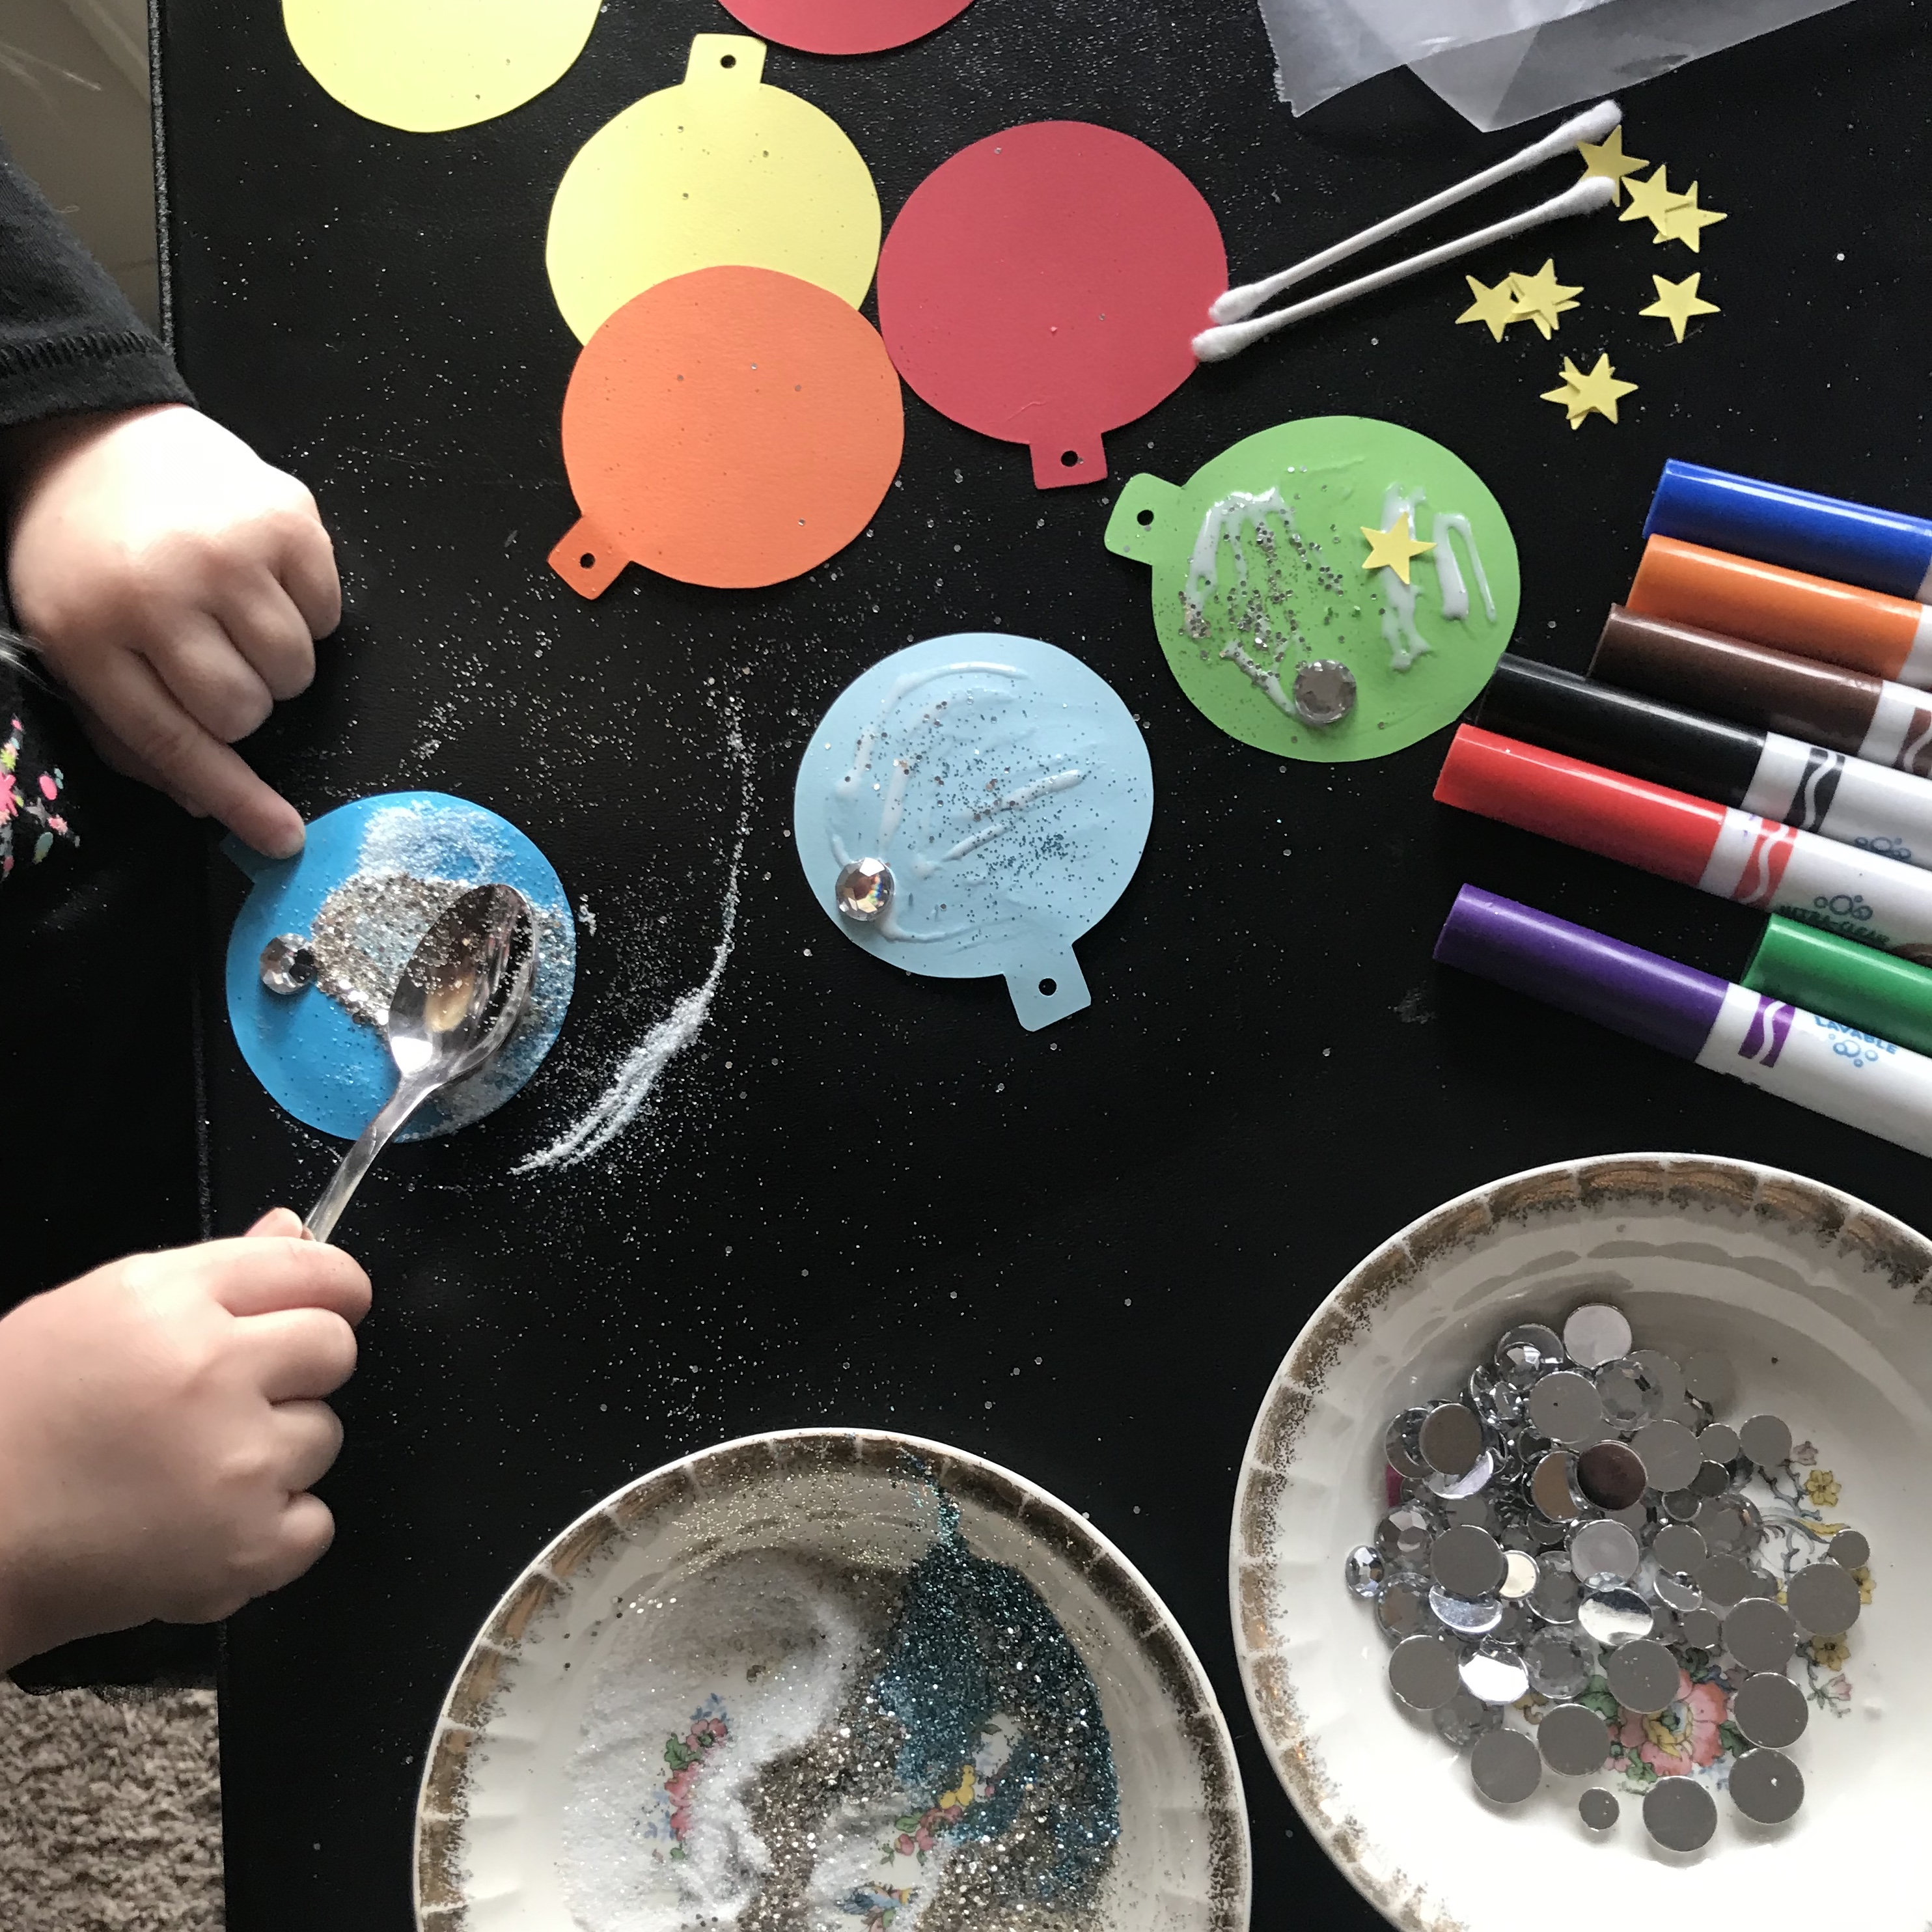 Toddler hands using spoon to put glitter on Christmas tags